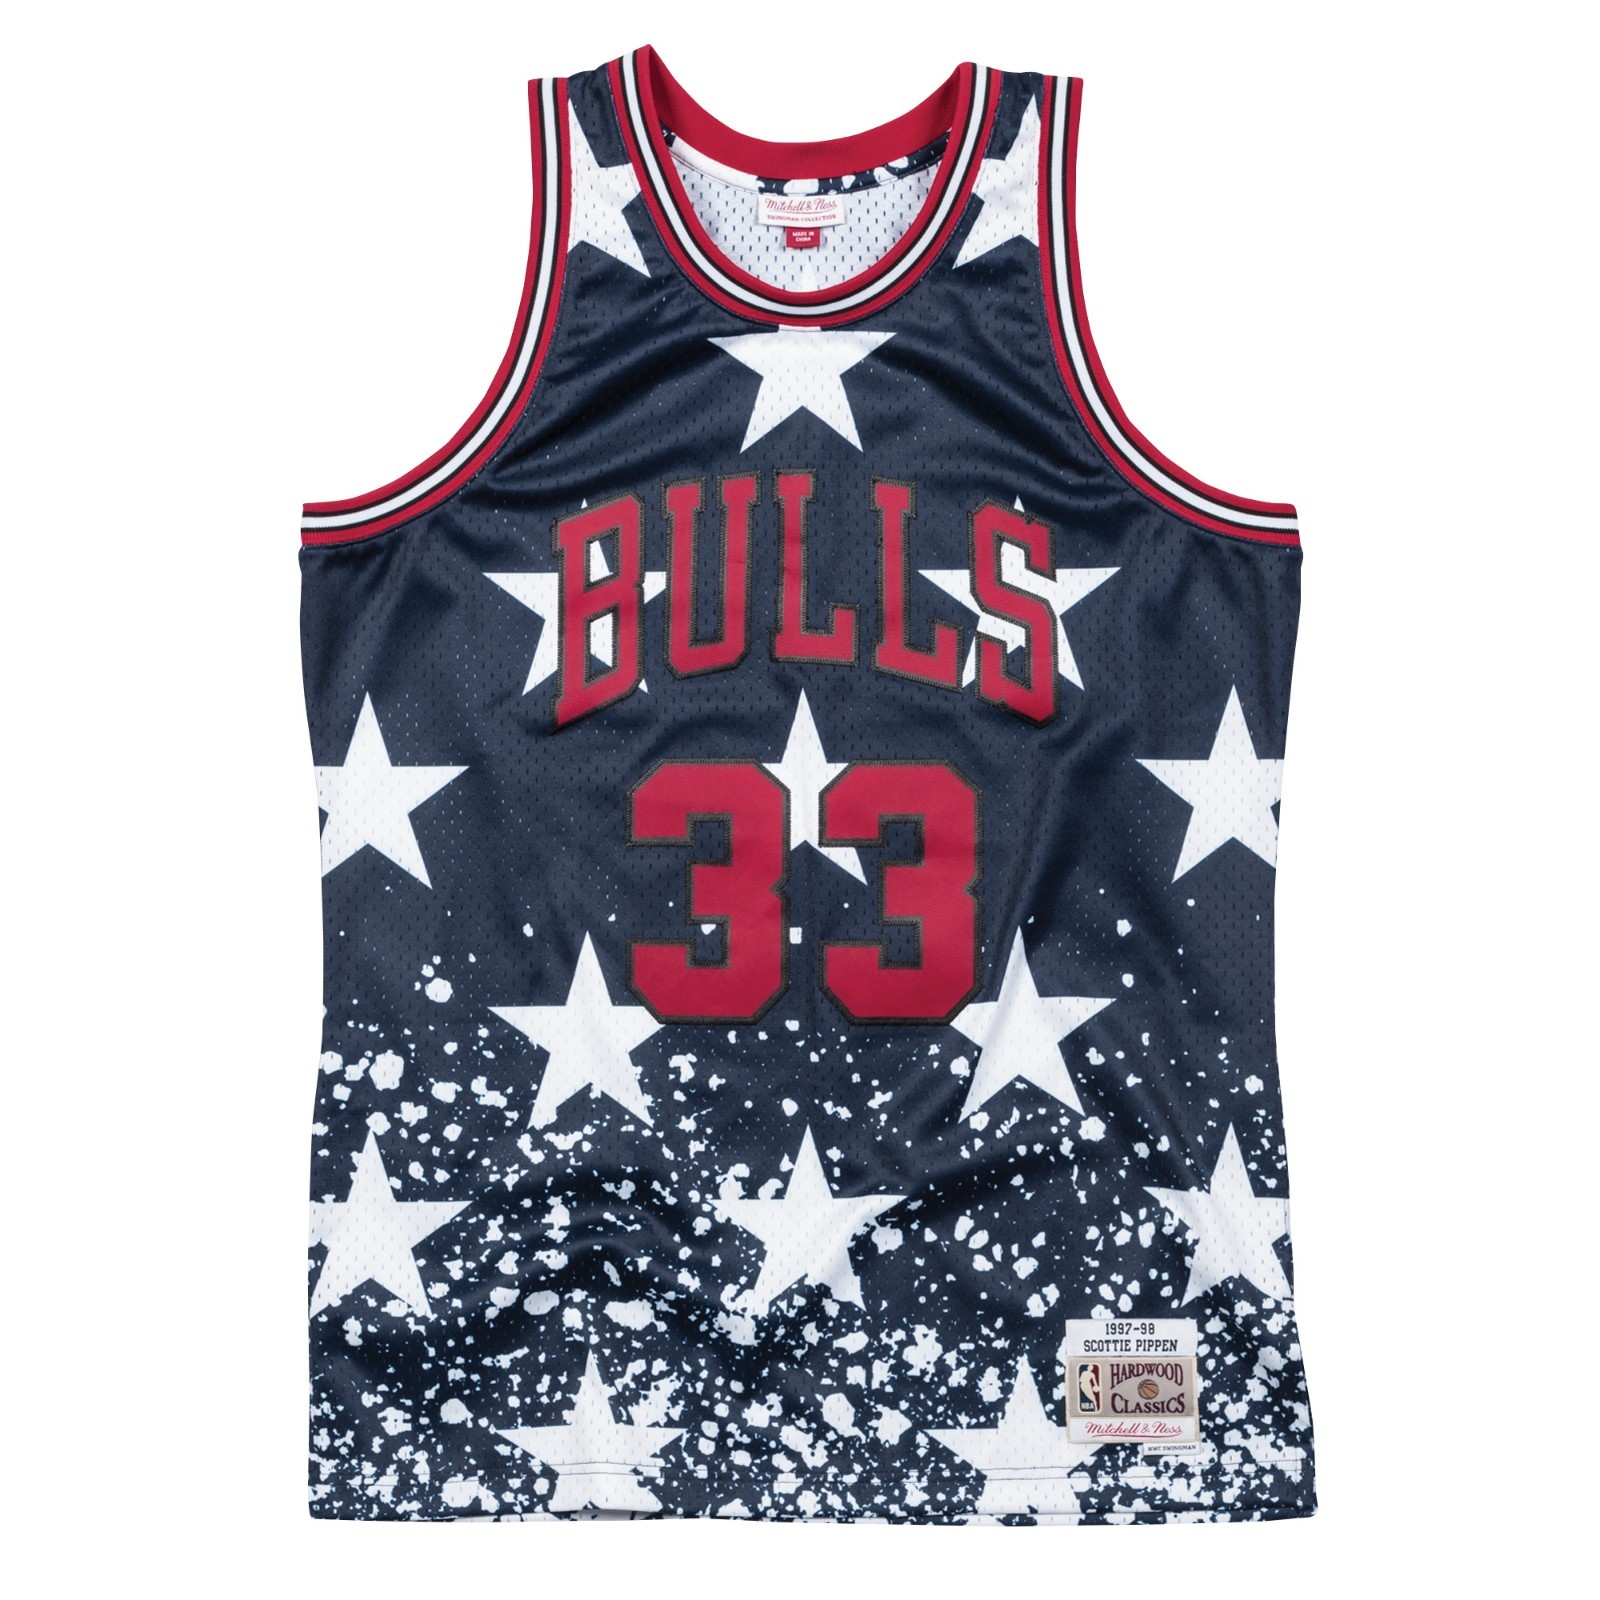 ... norway scottie pippen mitchell ness chicago bulls 4th of july swingman jersey  mens 48440 570b0 1c90fc3d3